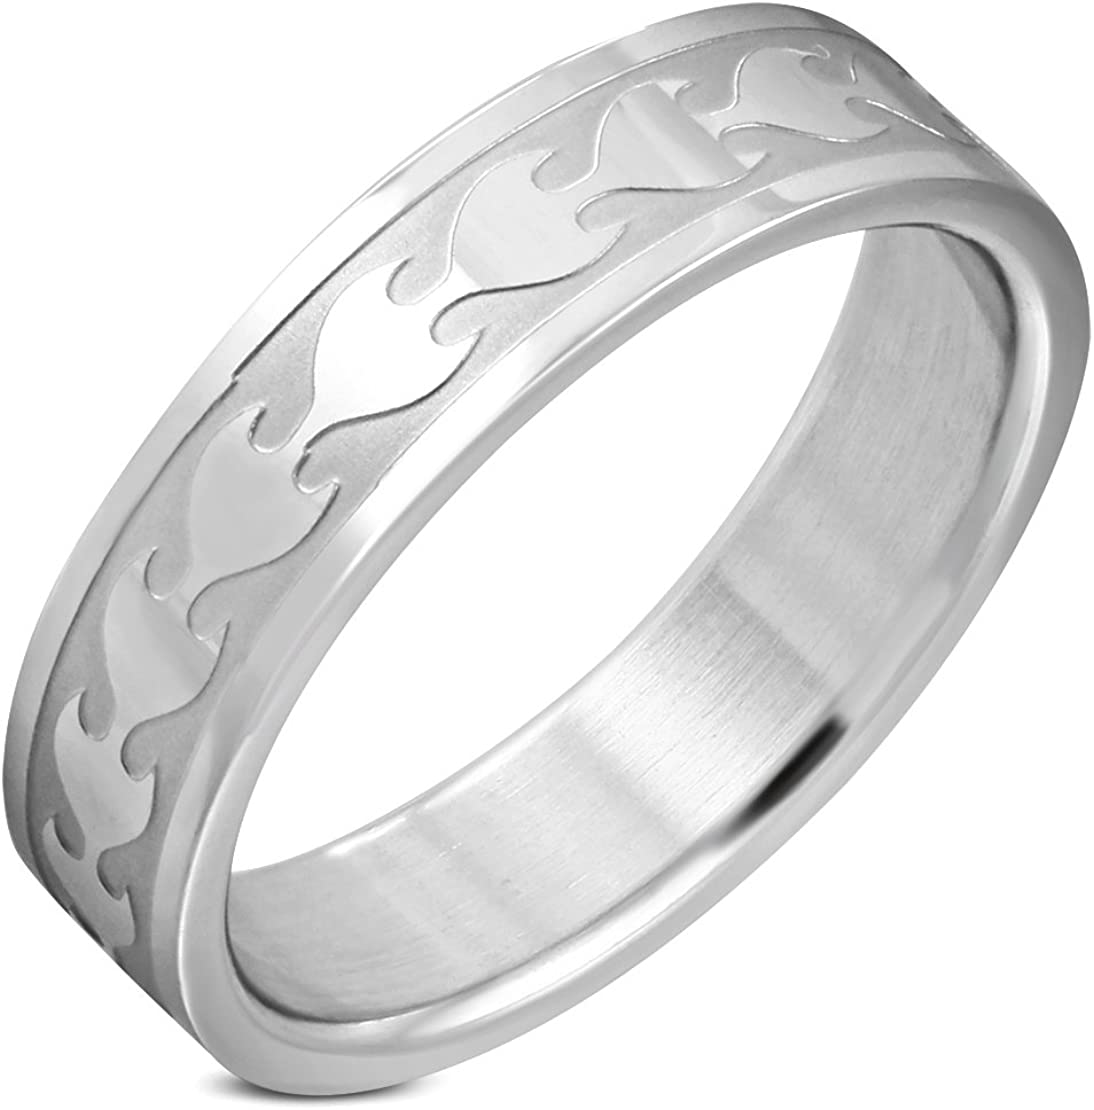 Stainless Steel Tribal Flame Flat Band Ring